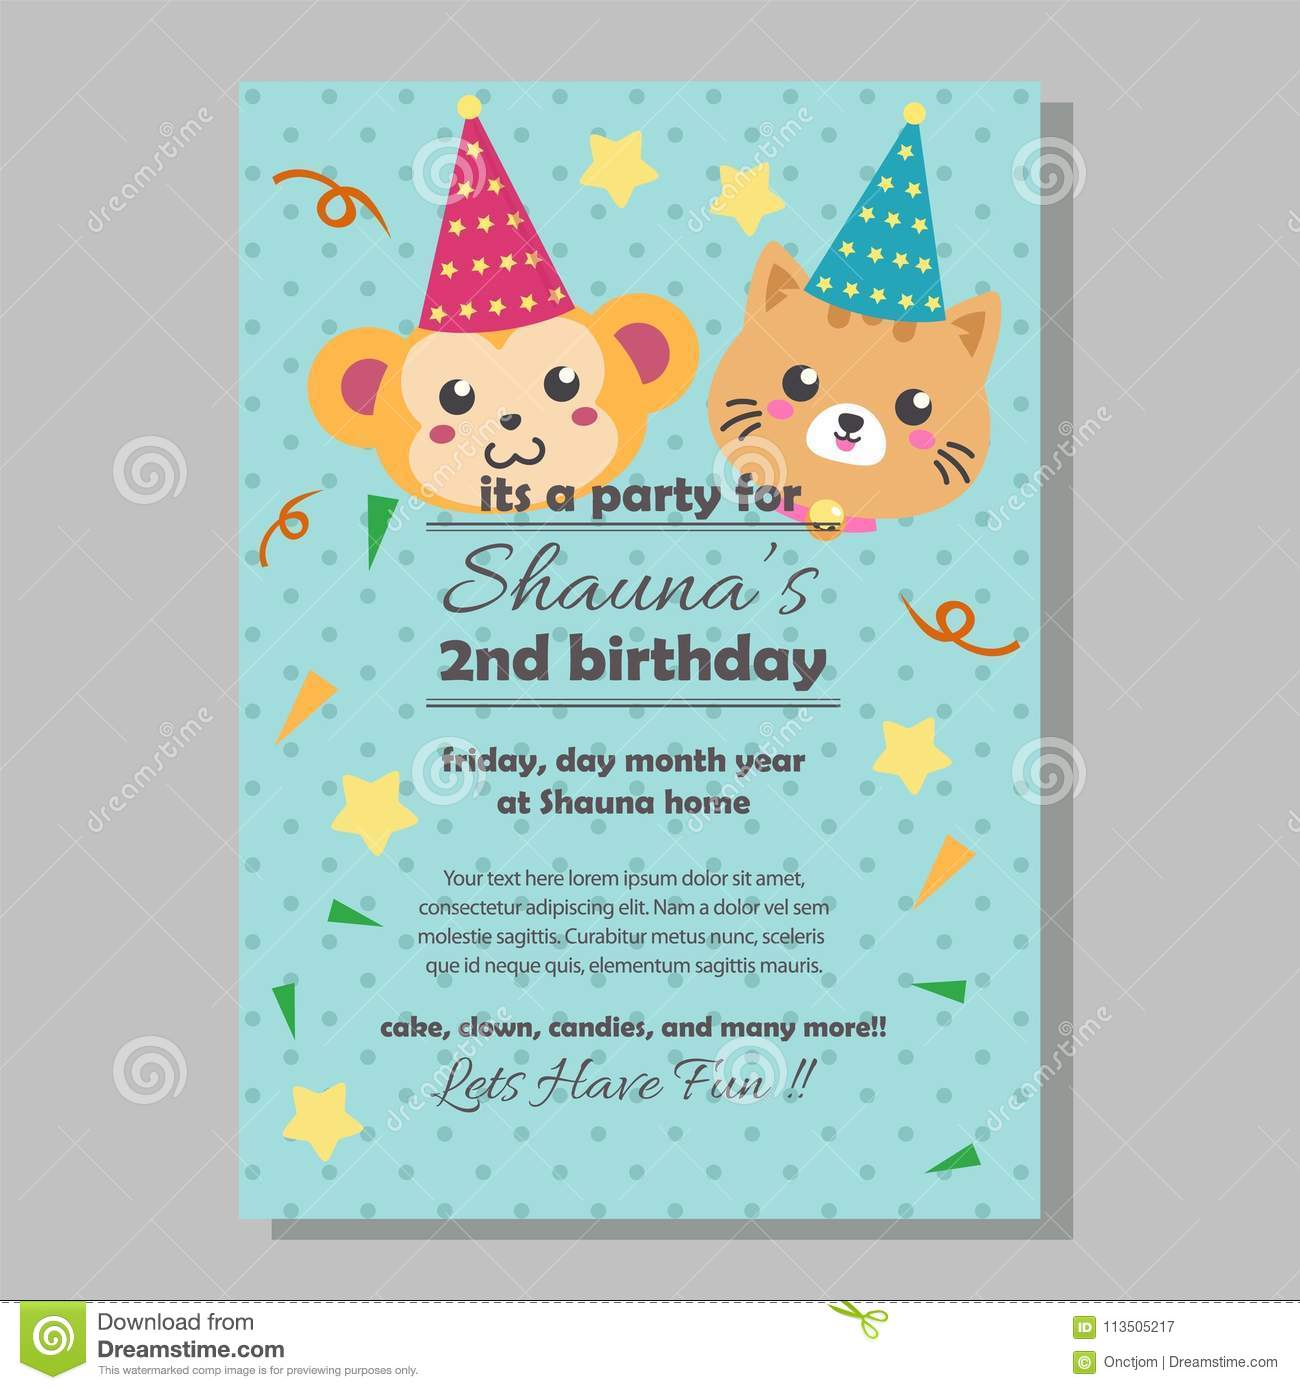 Party Birthday Invitation Template With Monkey And Cat